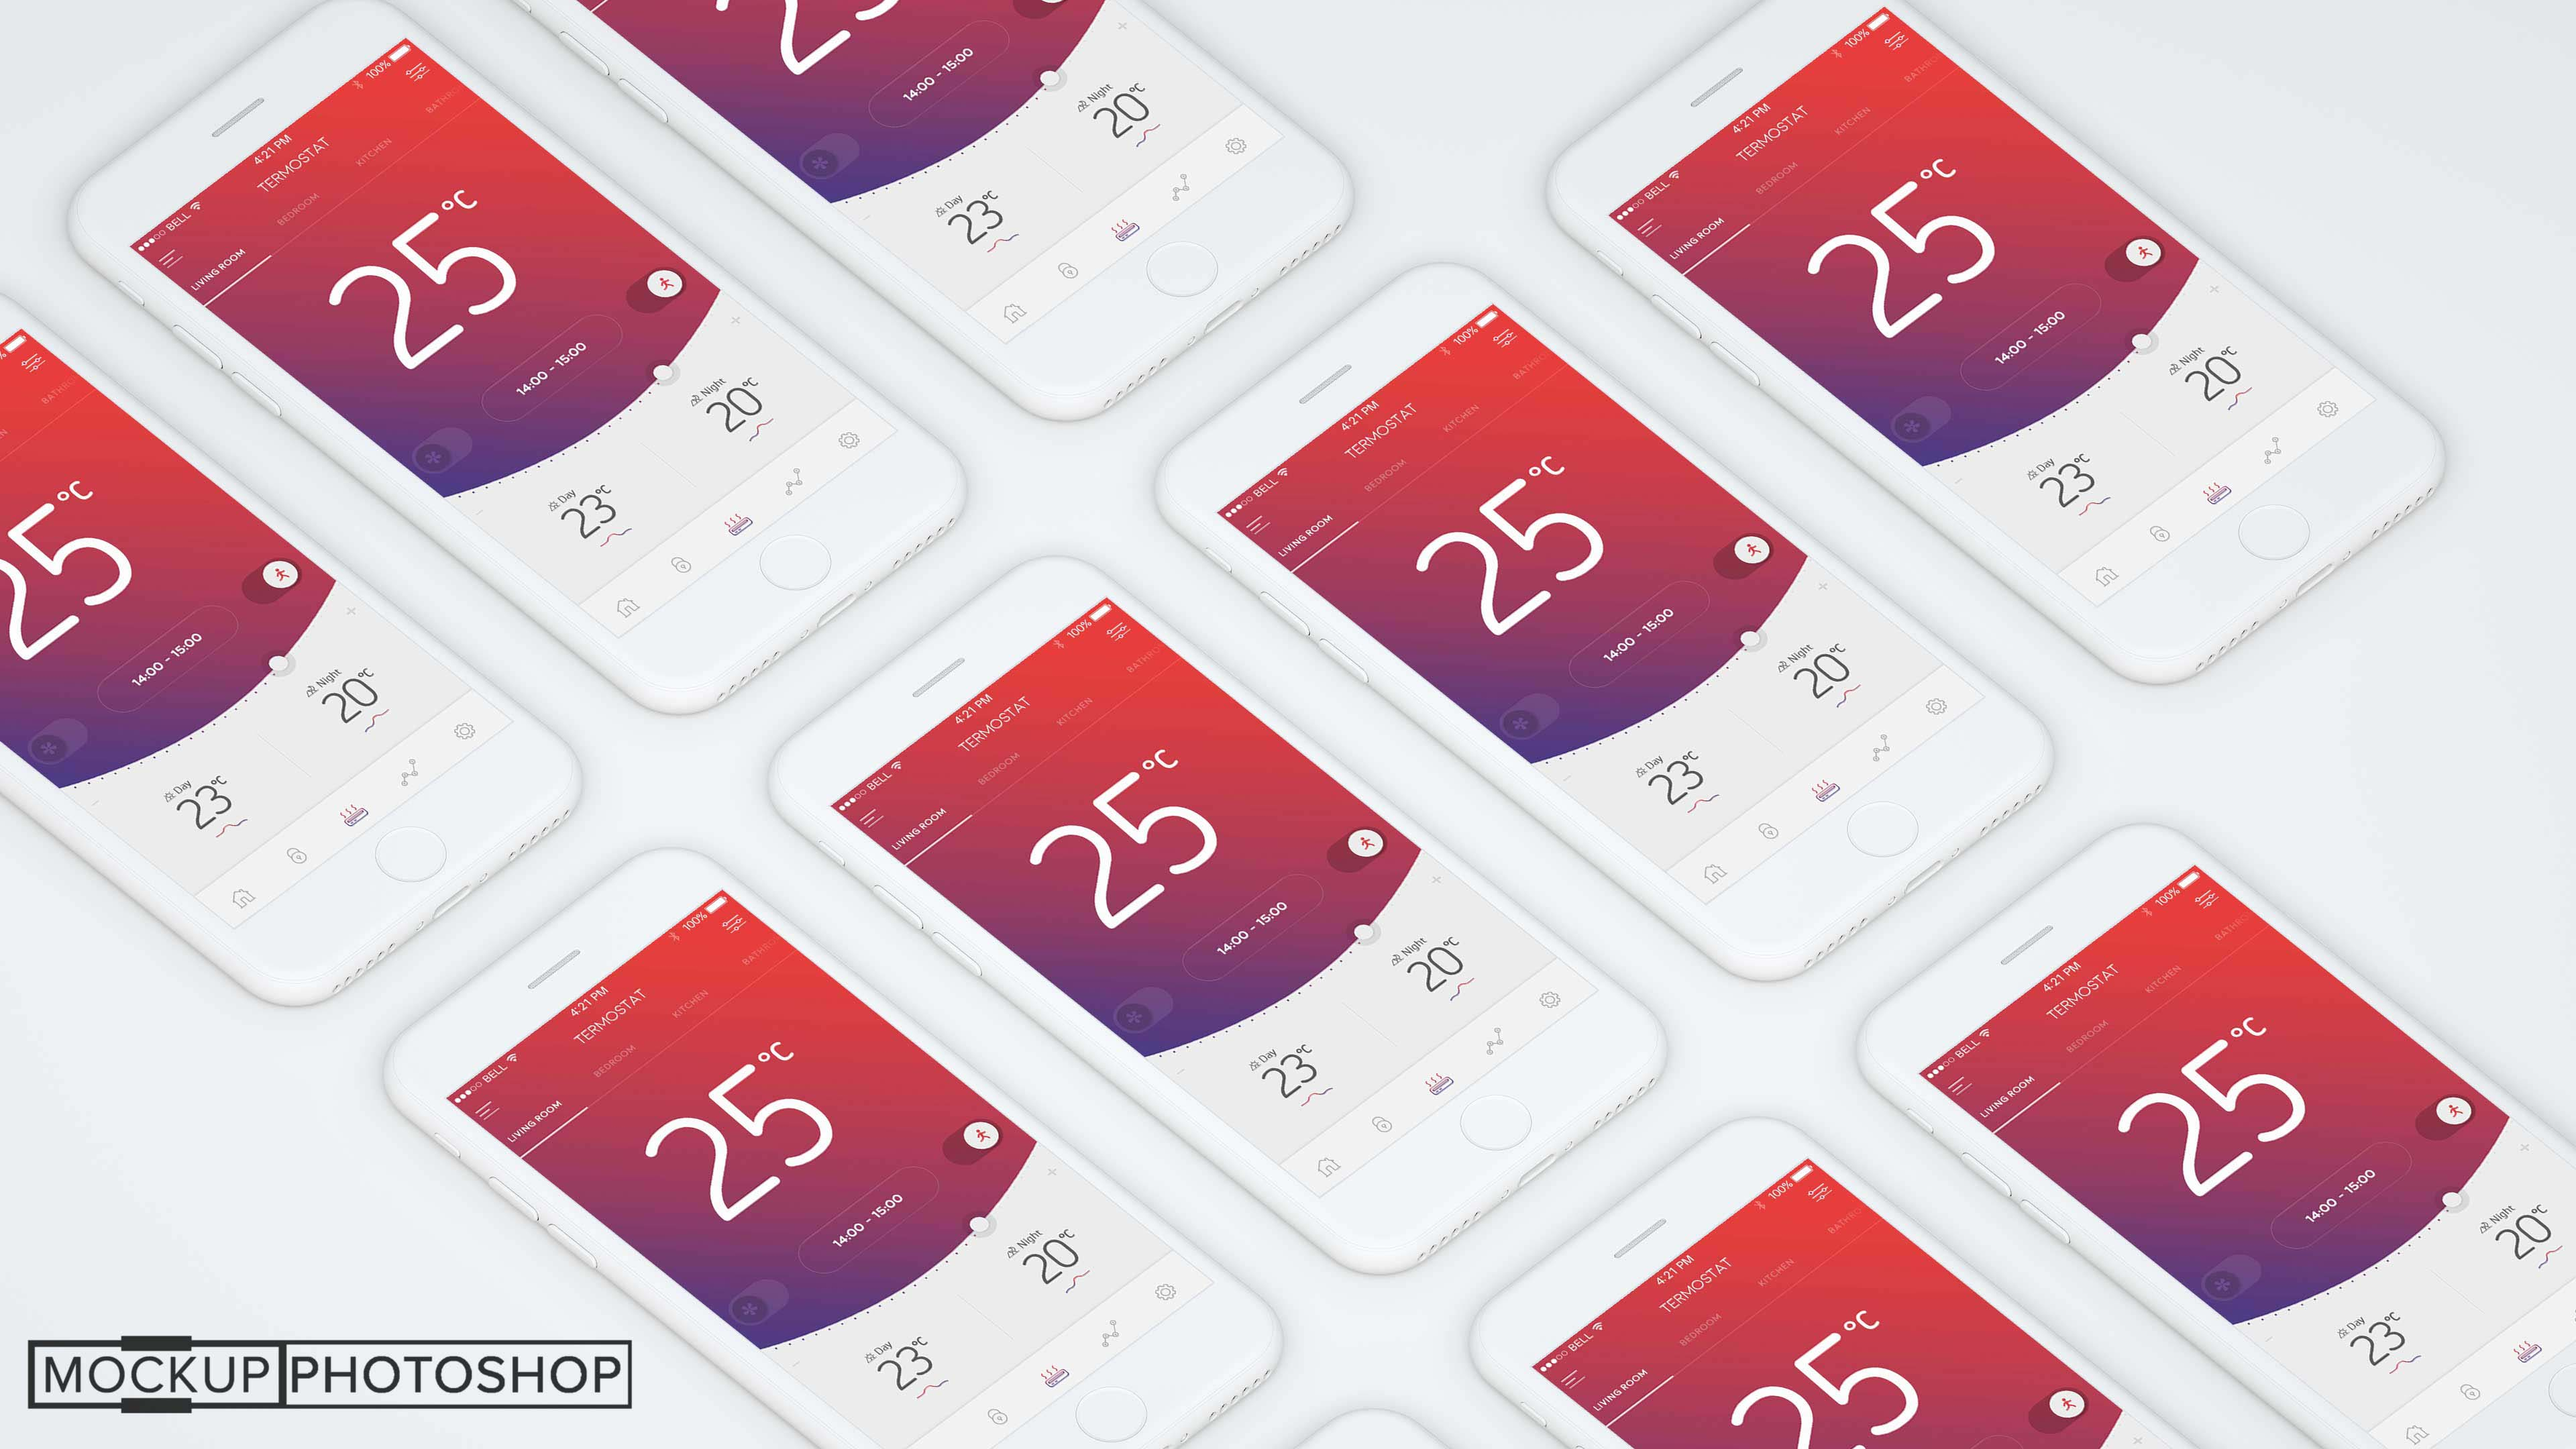 Awesome iPhone Mockup